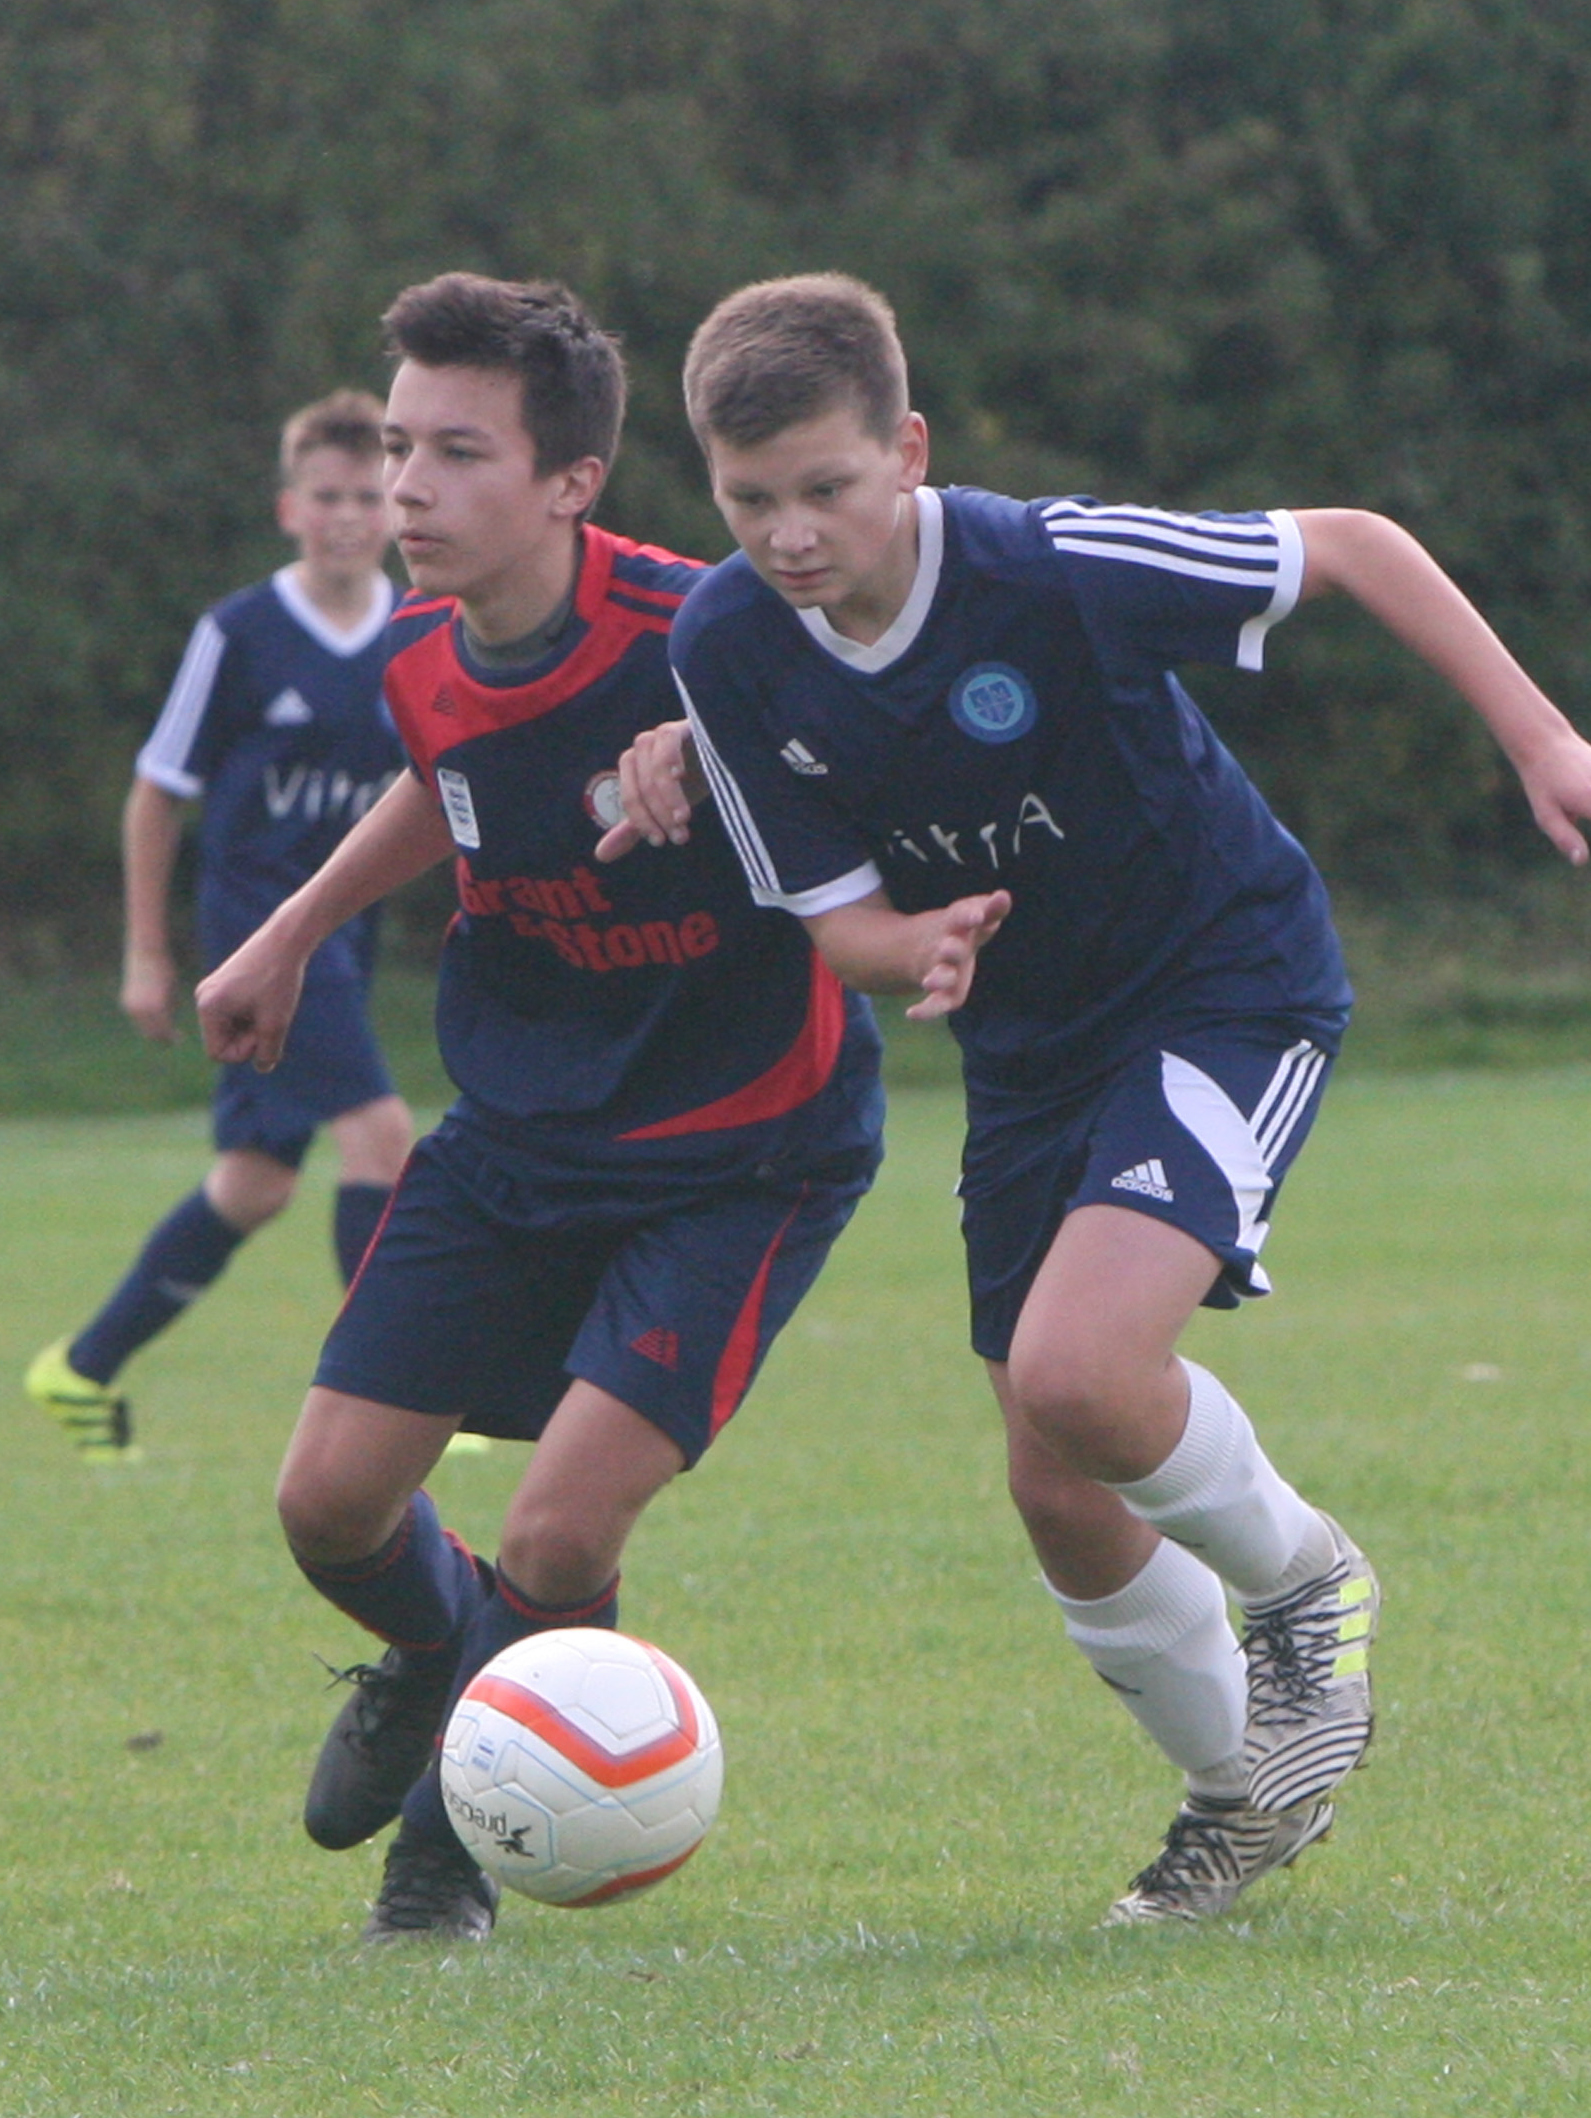 TRACKING BACK: Marston Saints' Matthew Hardecoeur Wilks (left) races to try to stop Jack Easton during his side's 1-0 win over Cumnor in the Under 15 C League Picture: Steve Wheeler